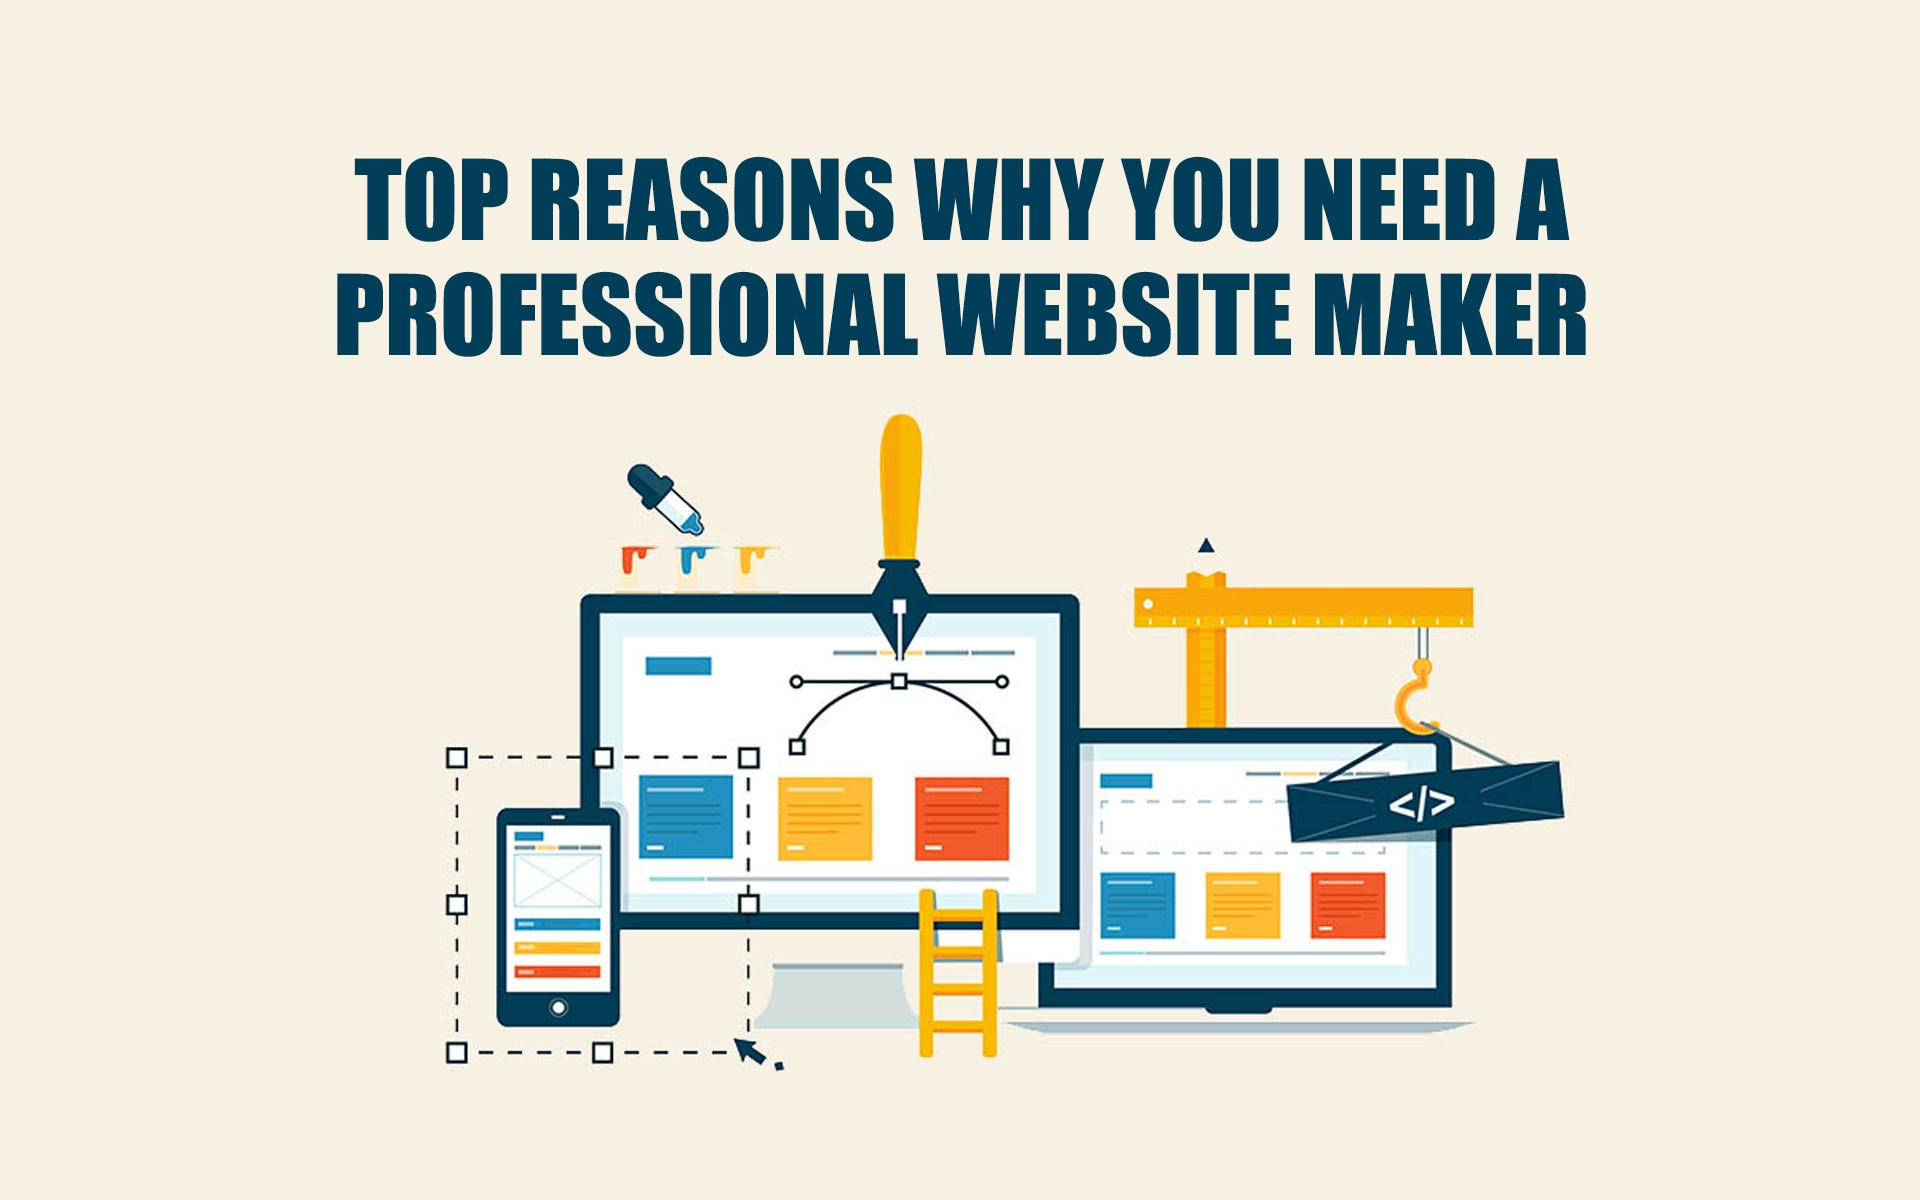 Top Reasons Why You Need a Professional Website Maker